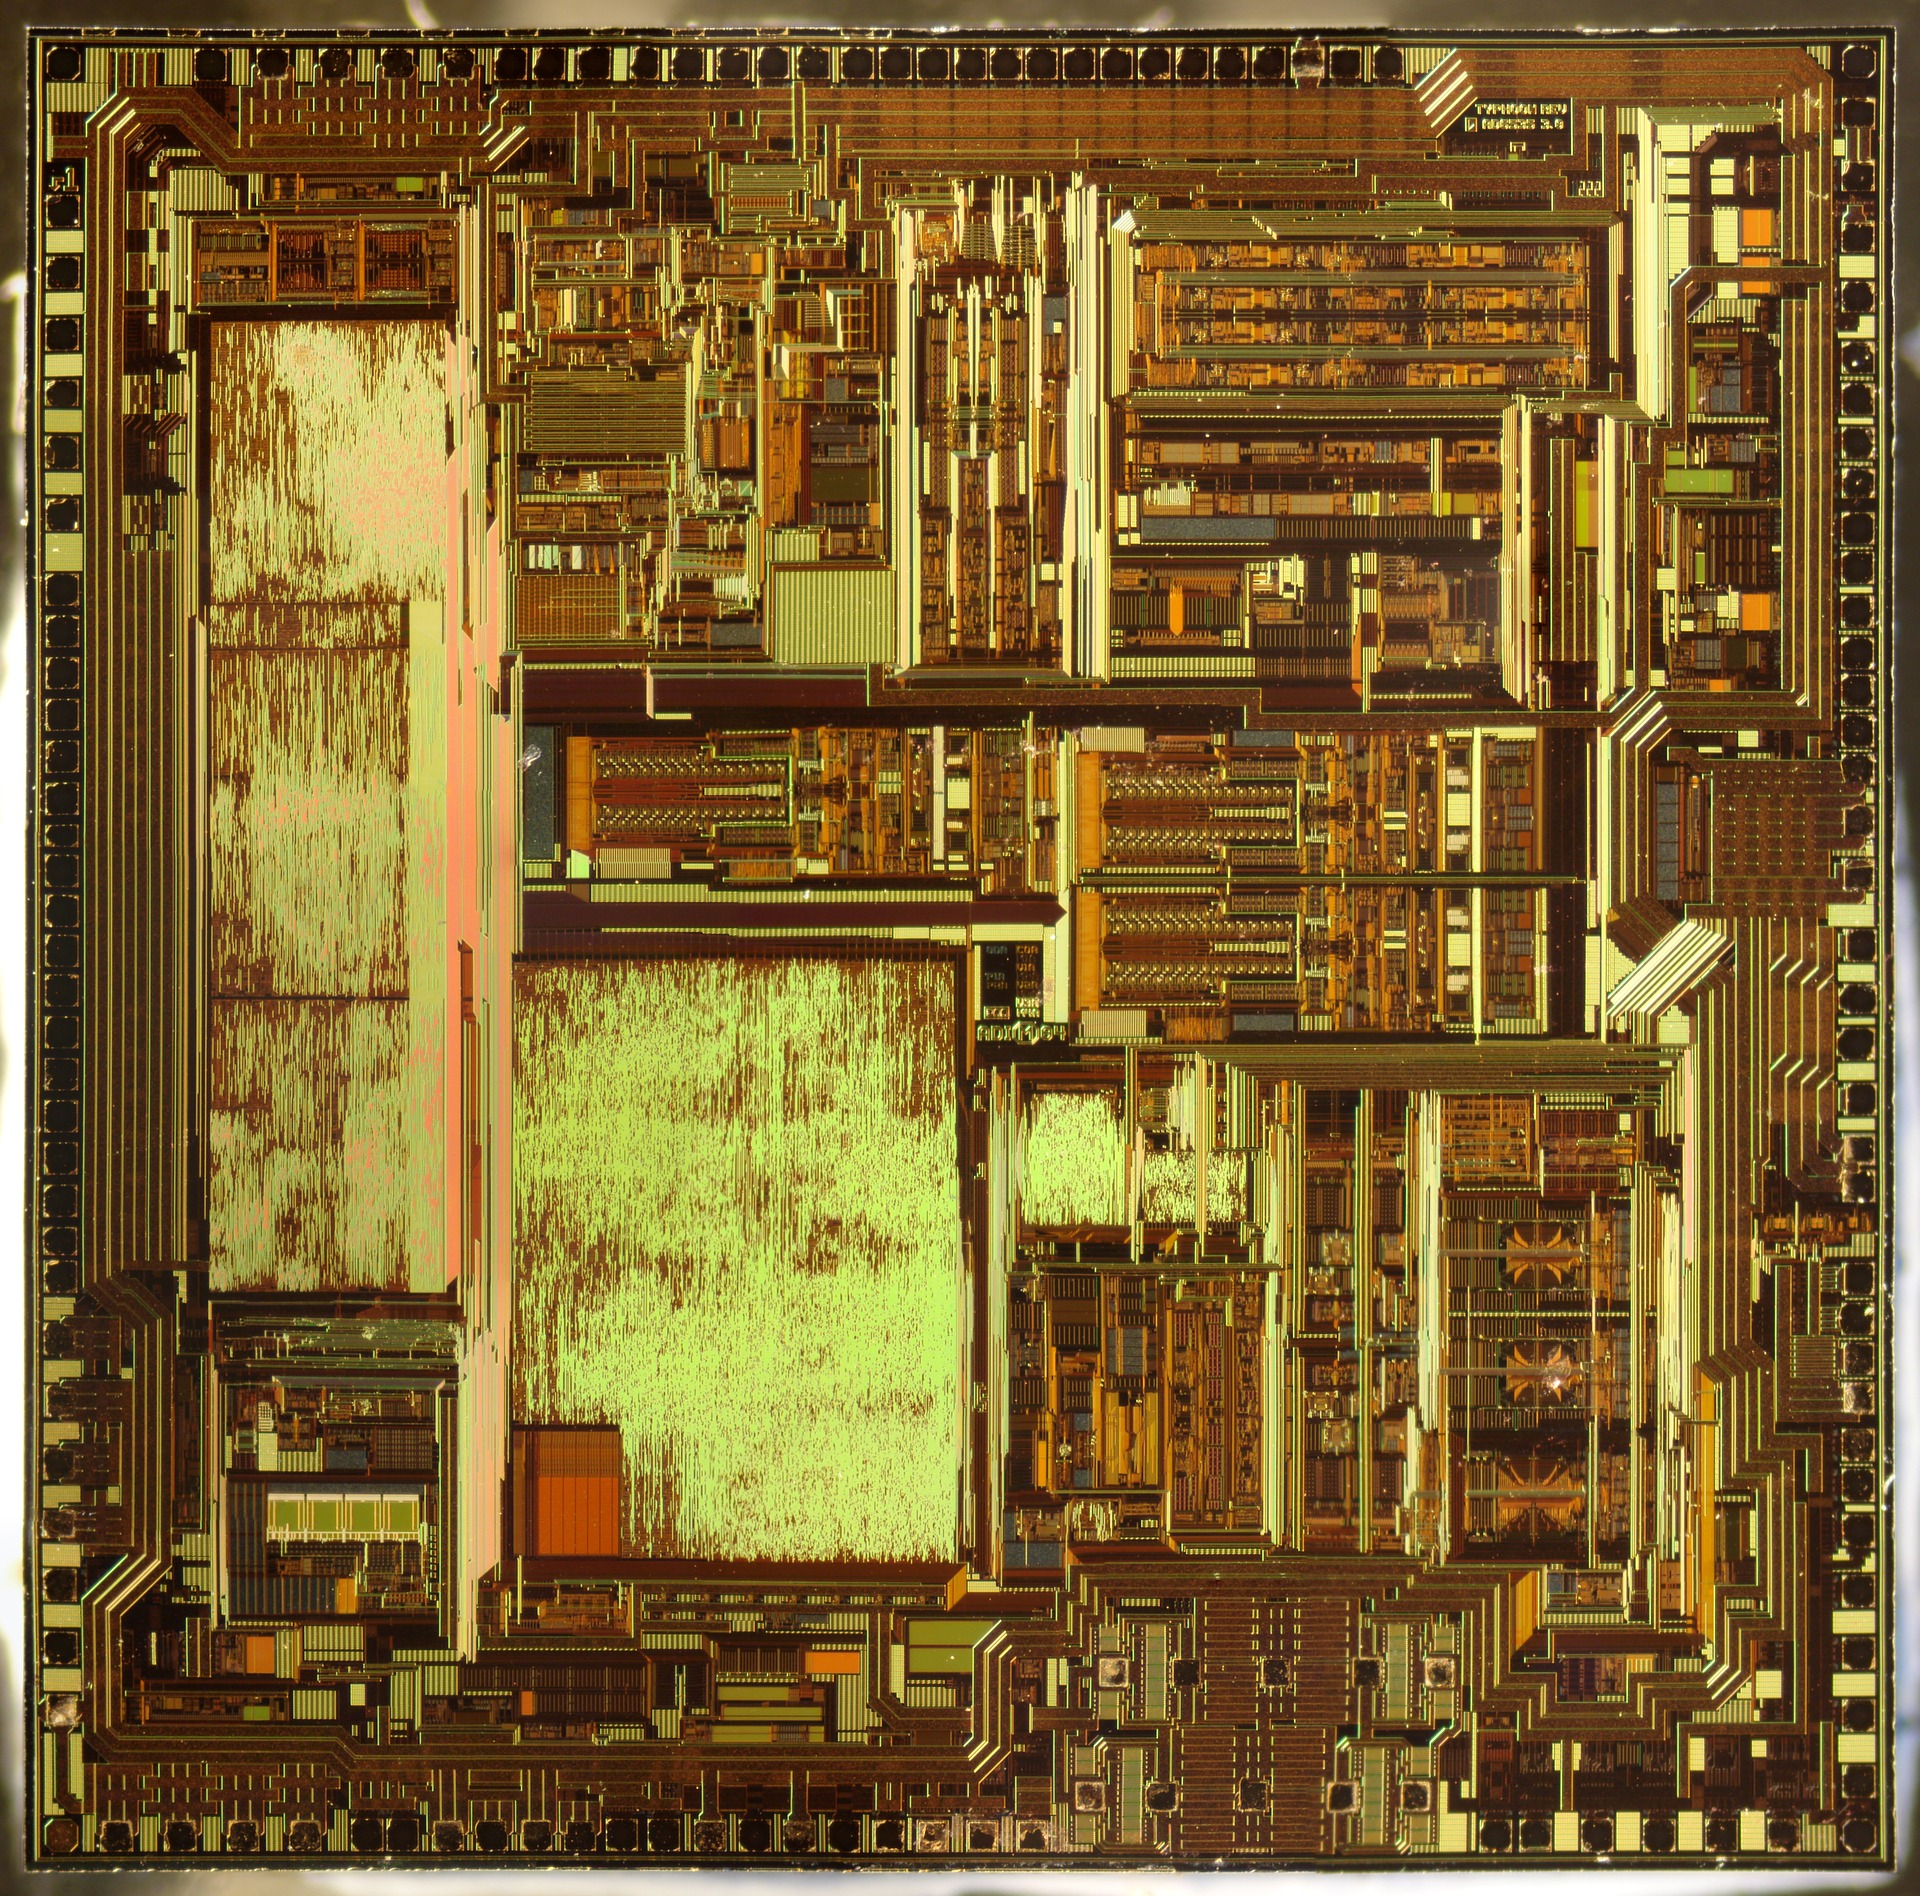 integrated-circuit-876099_1920